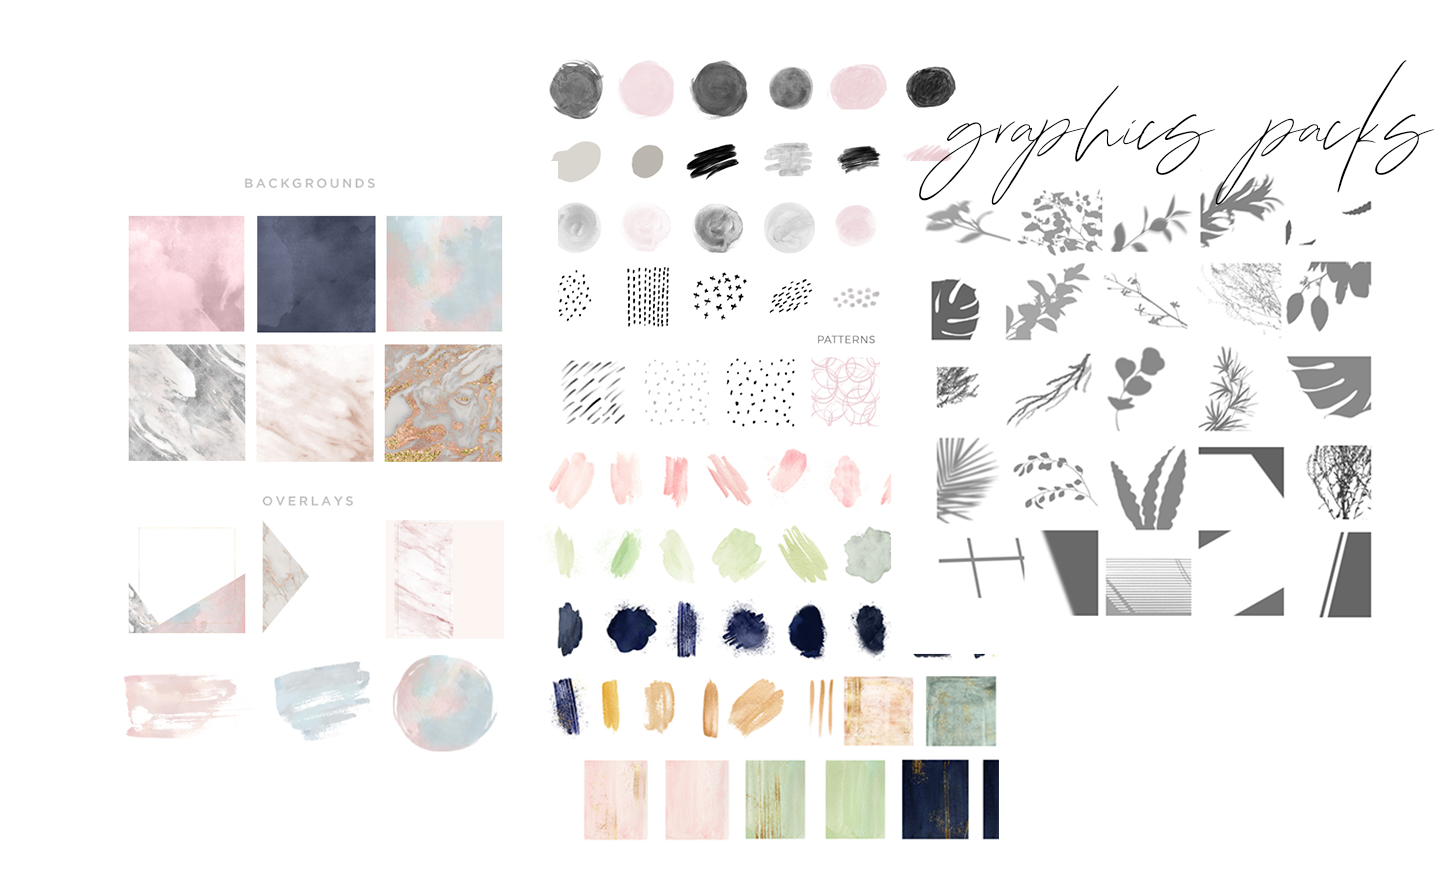 Exclusive Design Assets - New Graphics Packs are released every month. Full of gorgeous design assets like icons, backgrounds, overlays, frame, shadows, and brush strokes, forget about buying additional design assets elsewhere, we have you covered!